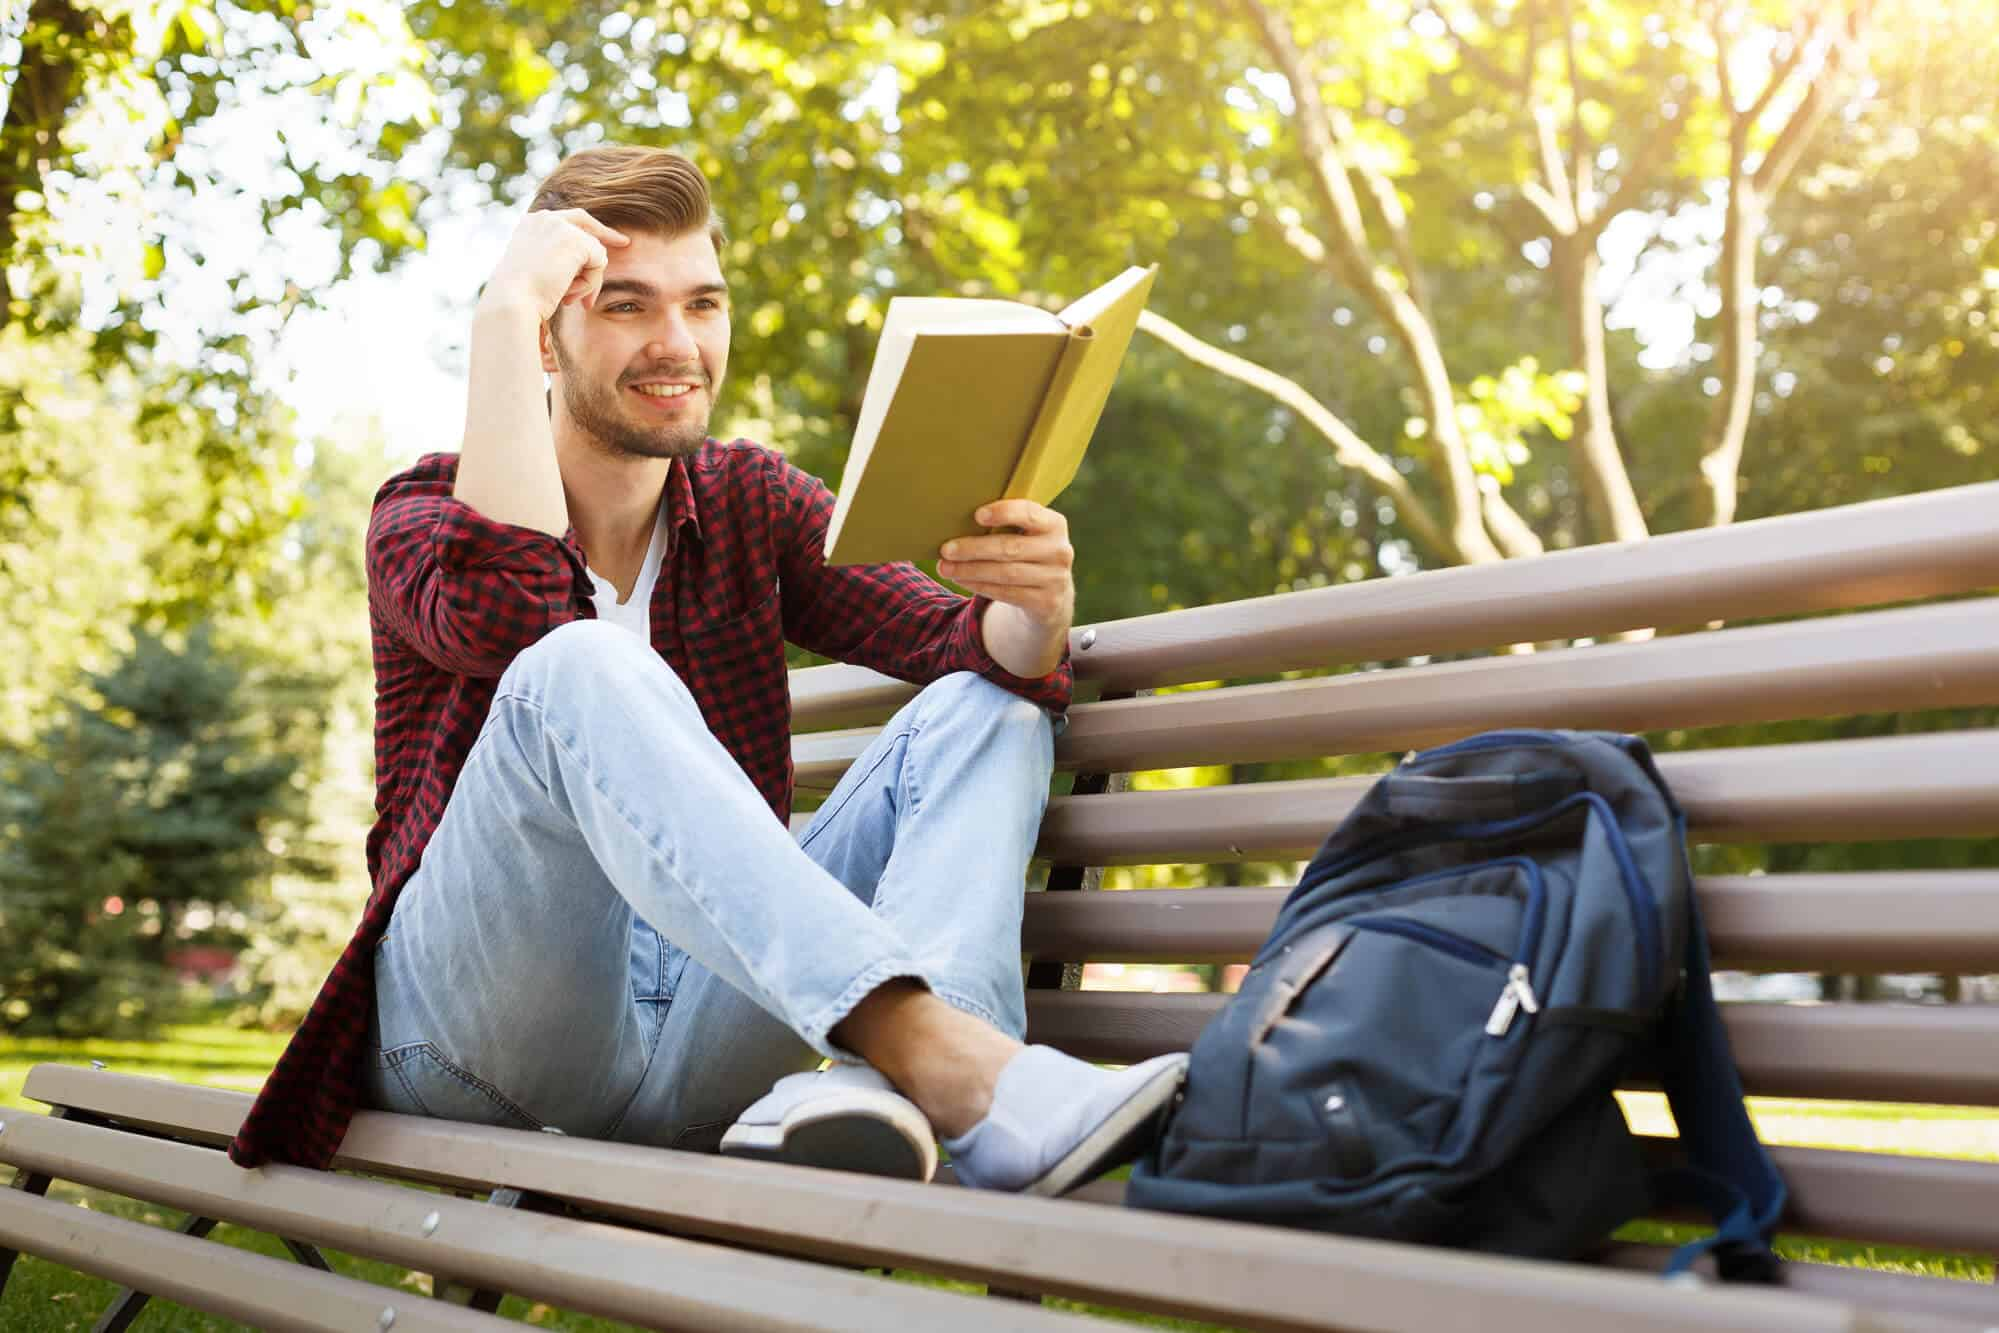 Male college student reading on a bench